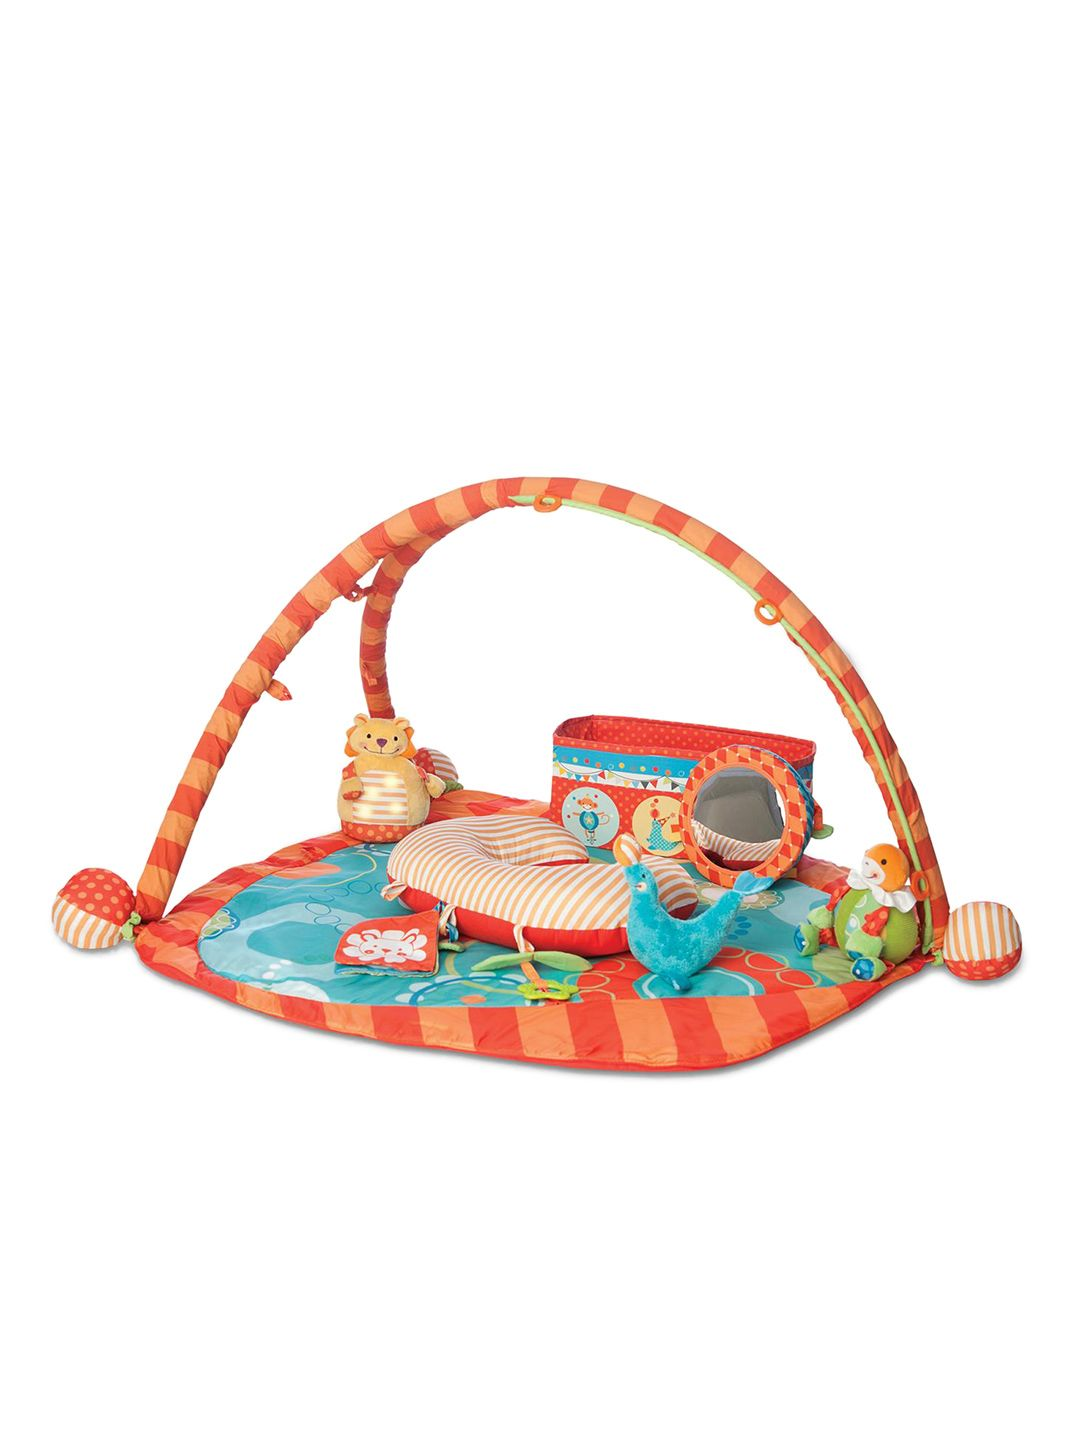 Creating The Perfect Play Area For Your Baby Is Easy With The Boppy Play Gym.  An Oversized Pad Provides Plenty Of Room For Playing, Stretching, ...